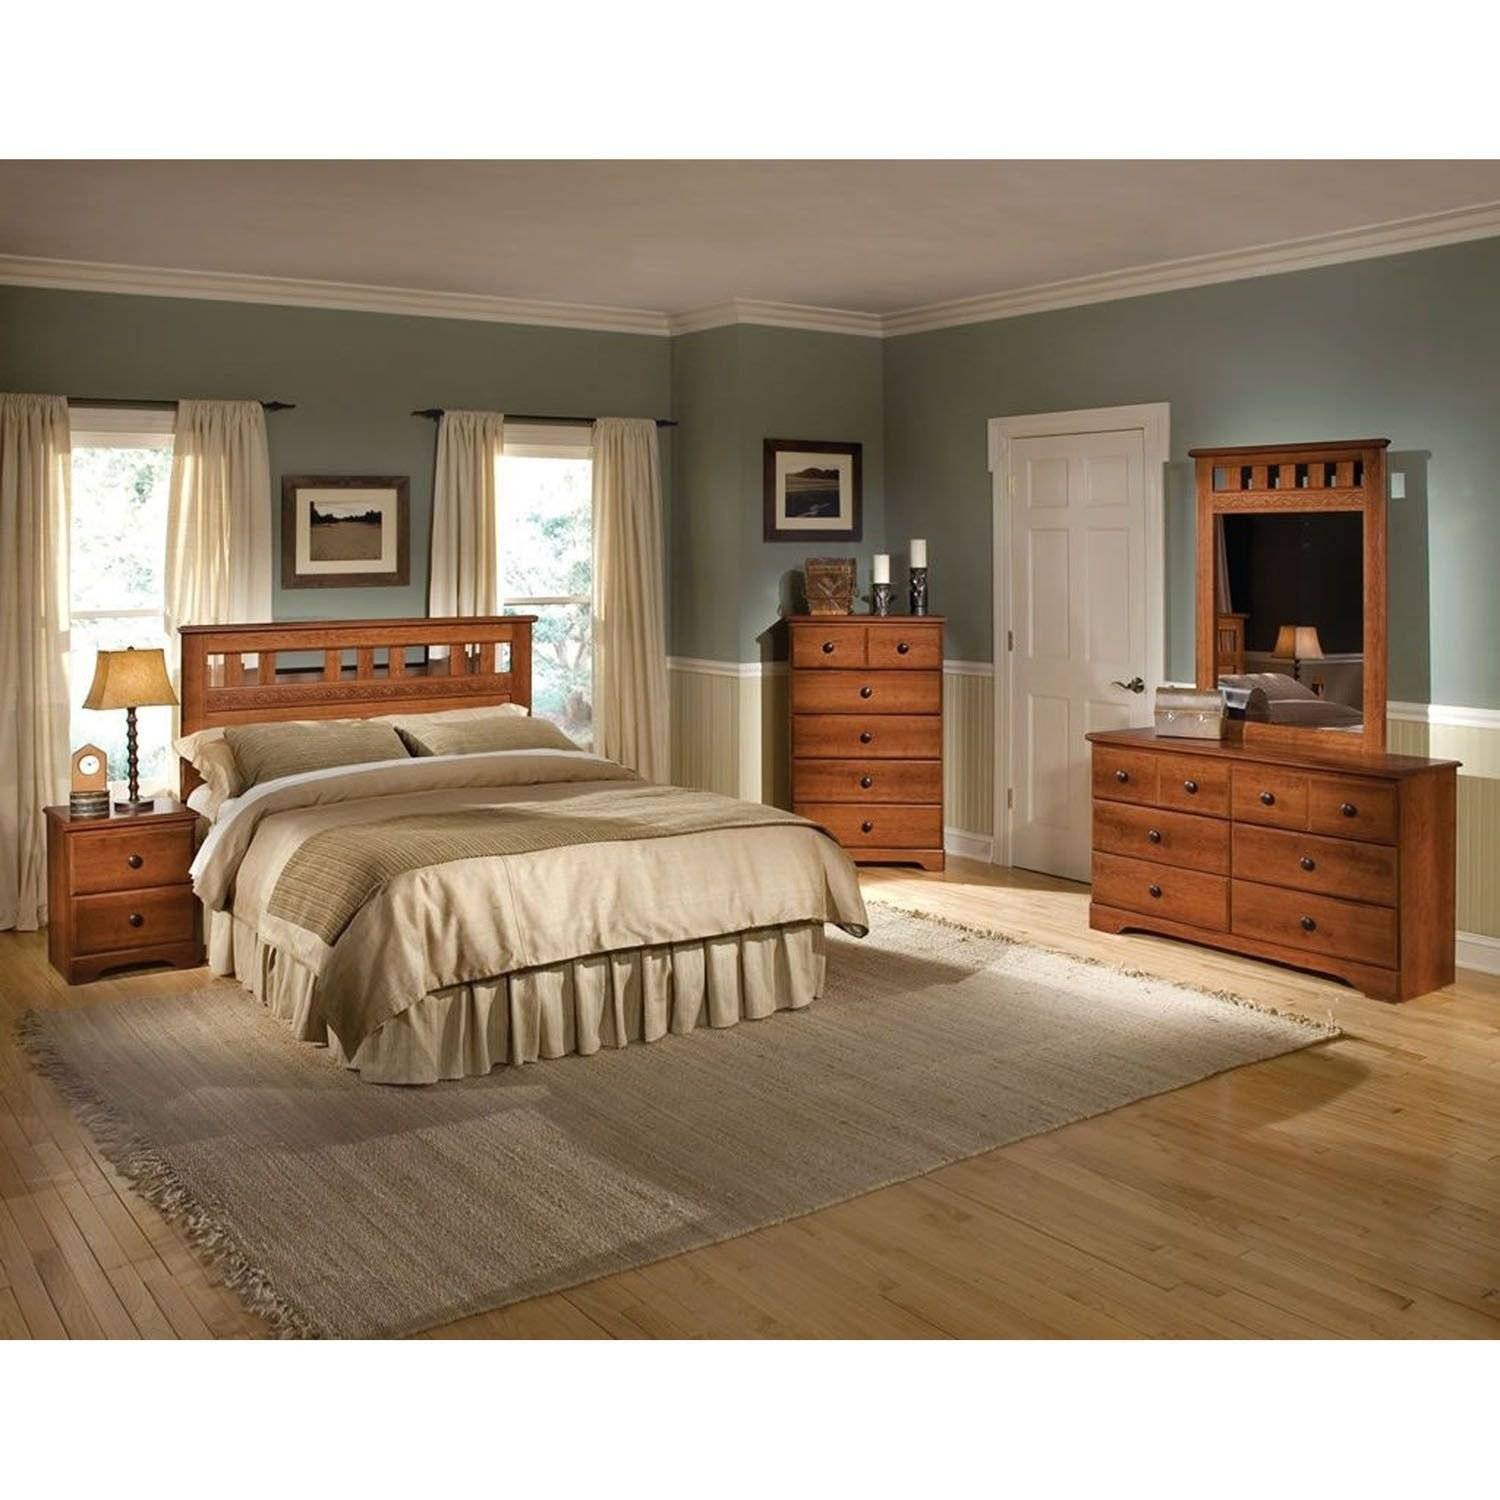 Queen Size Bedroom Suite Awesome Cambridge Seasons Five Piece Bedroom Suite Queen Bed